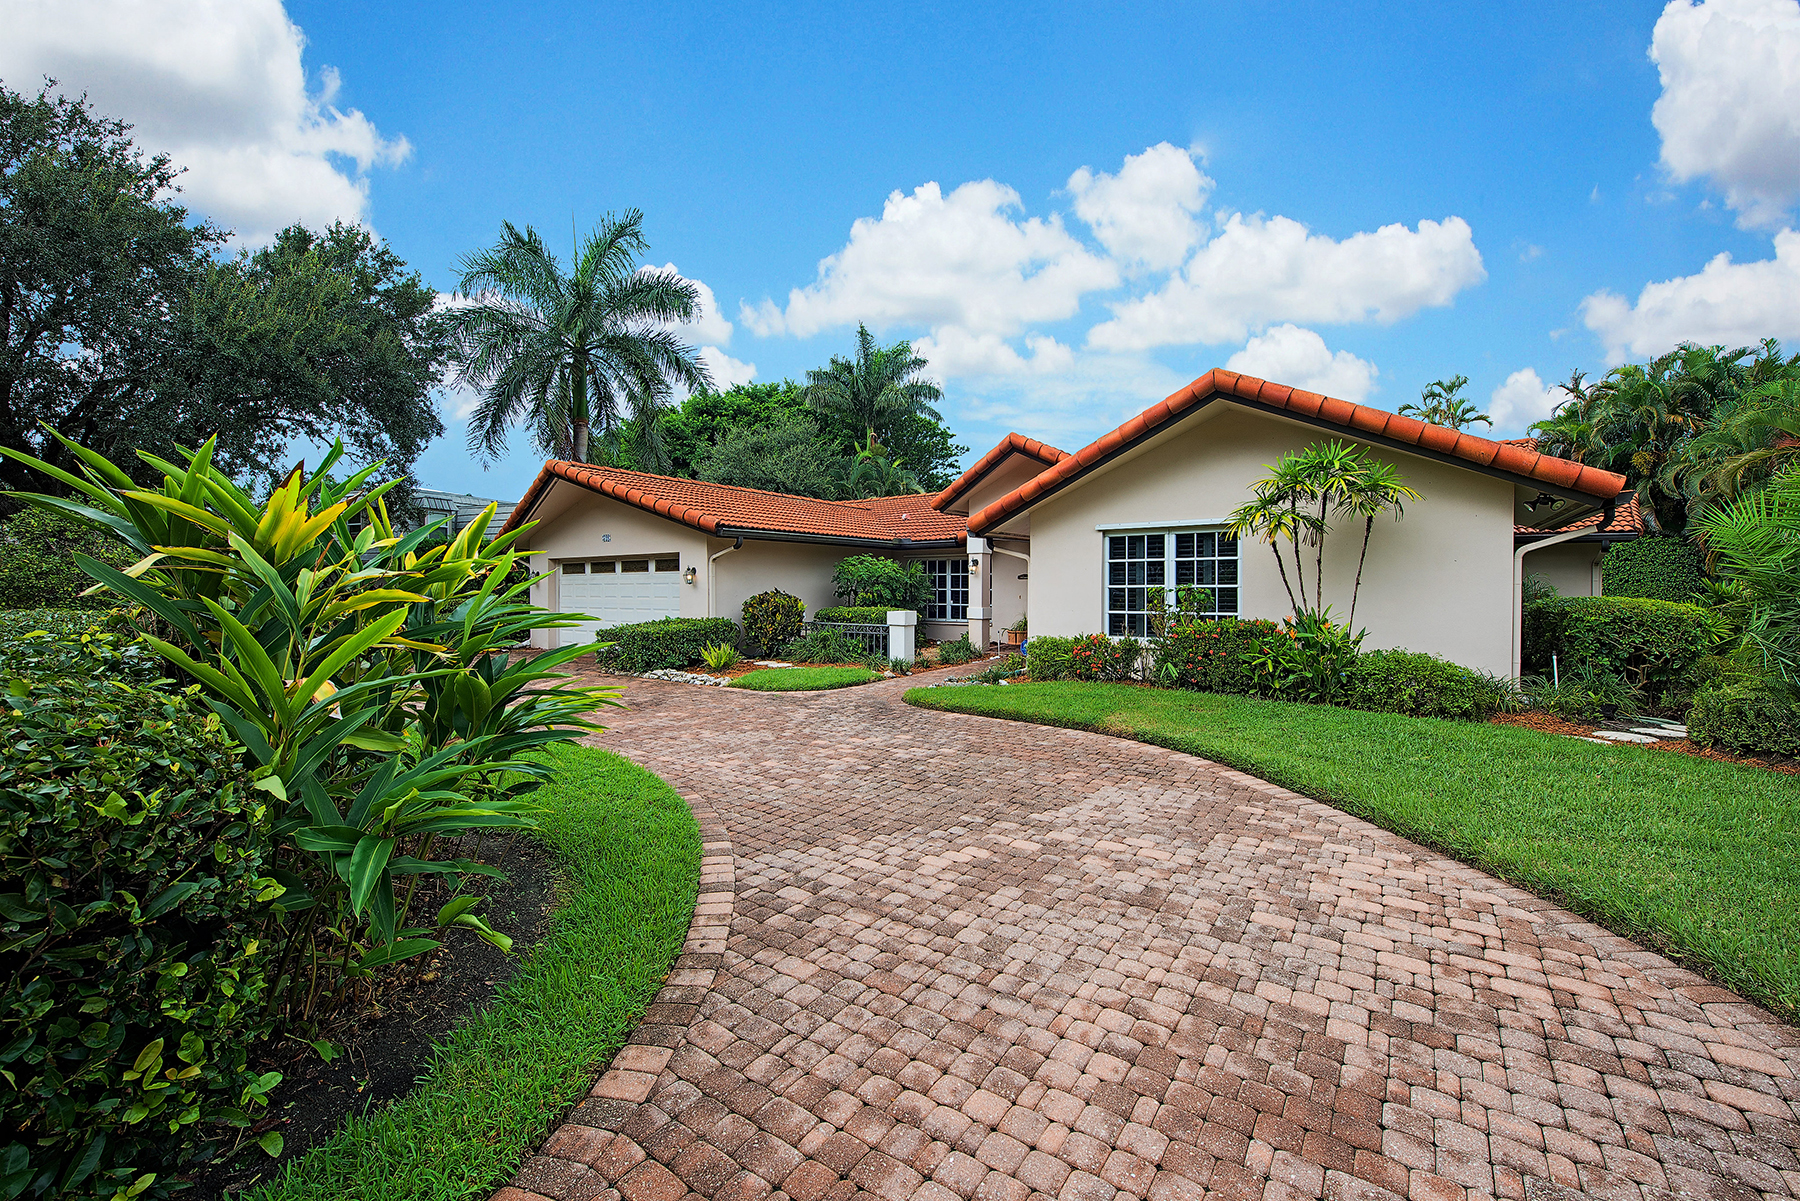 Casa Unifamiliar por un Venta en PARK SHORE 721 Willowhead Dr Naples, Florida, 34103 Estados Unidos